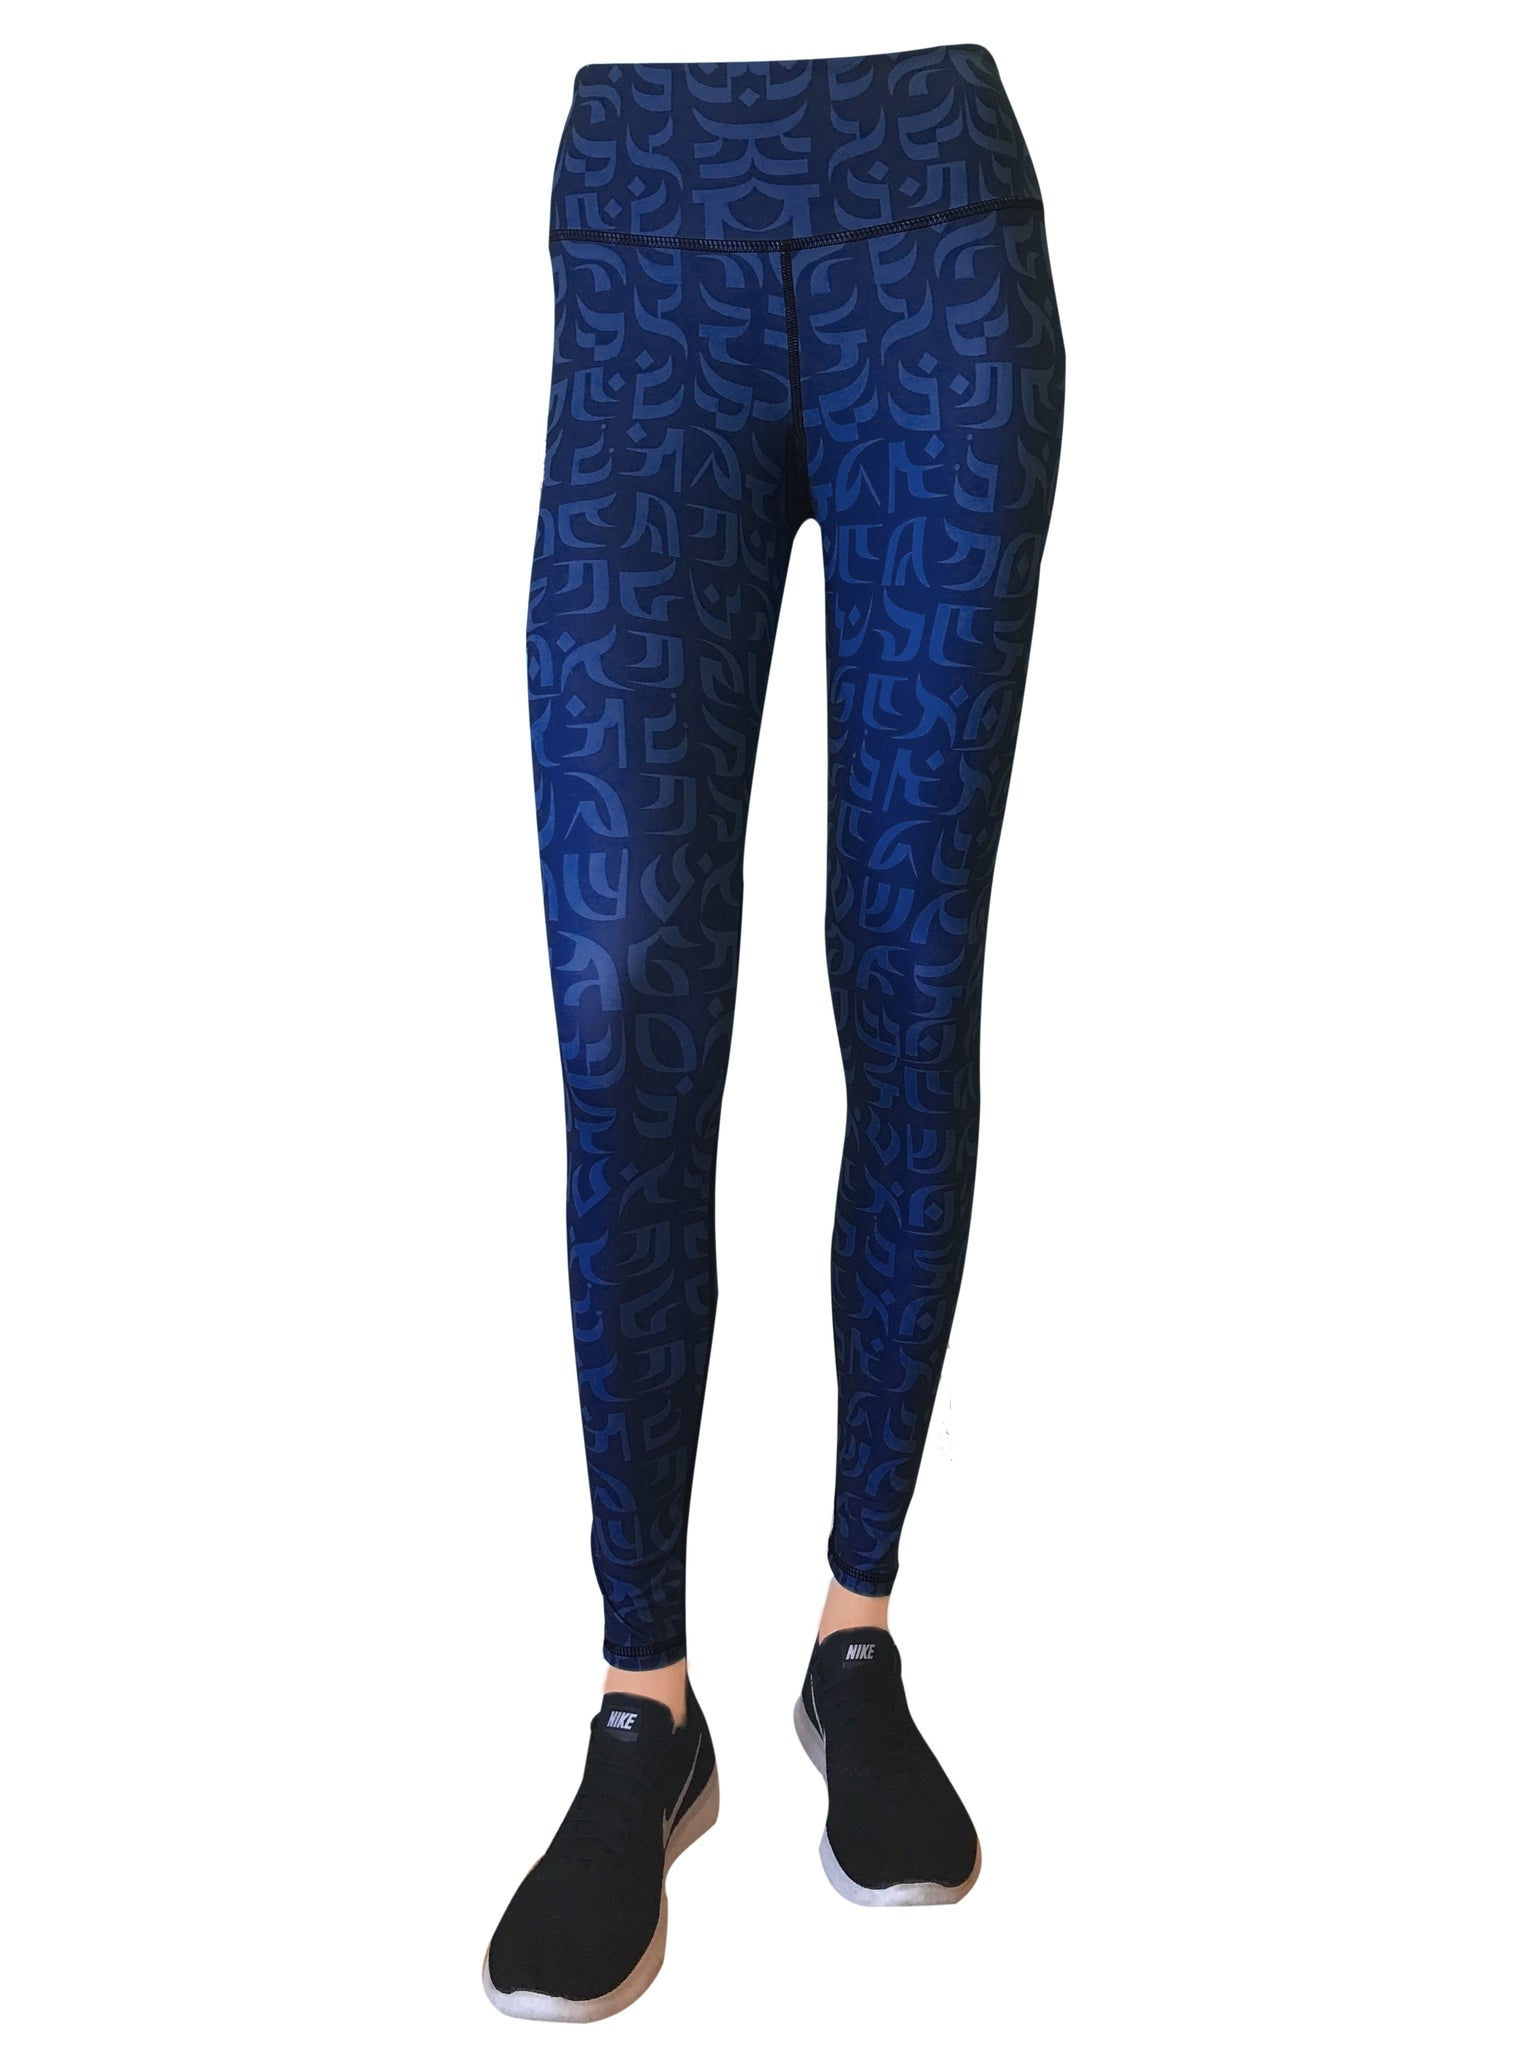 Deep Sea Cultura Leggings